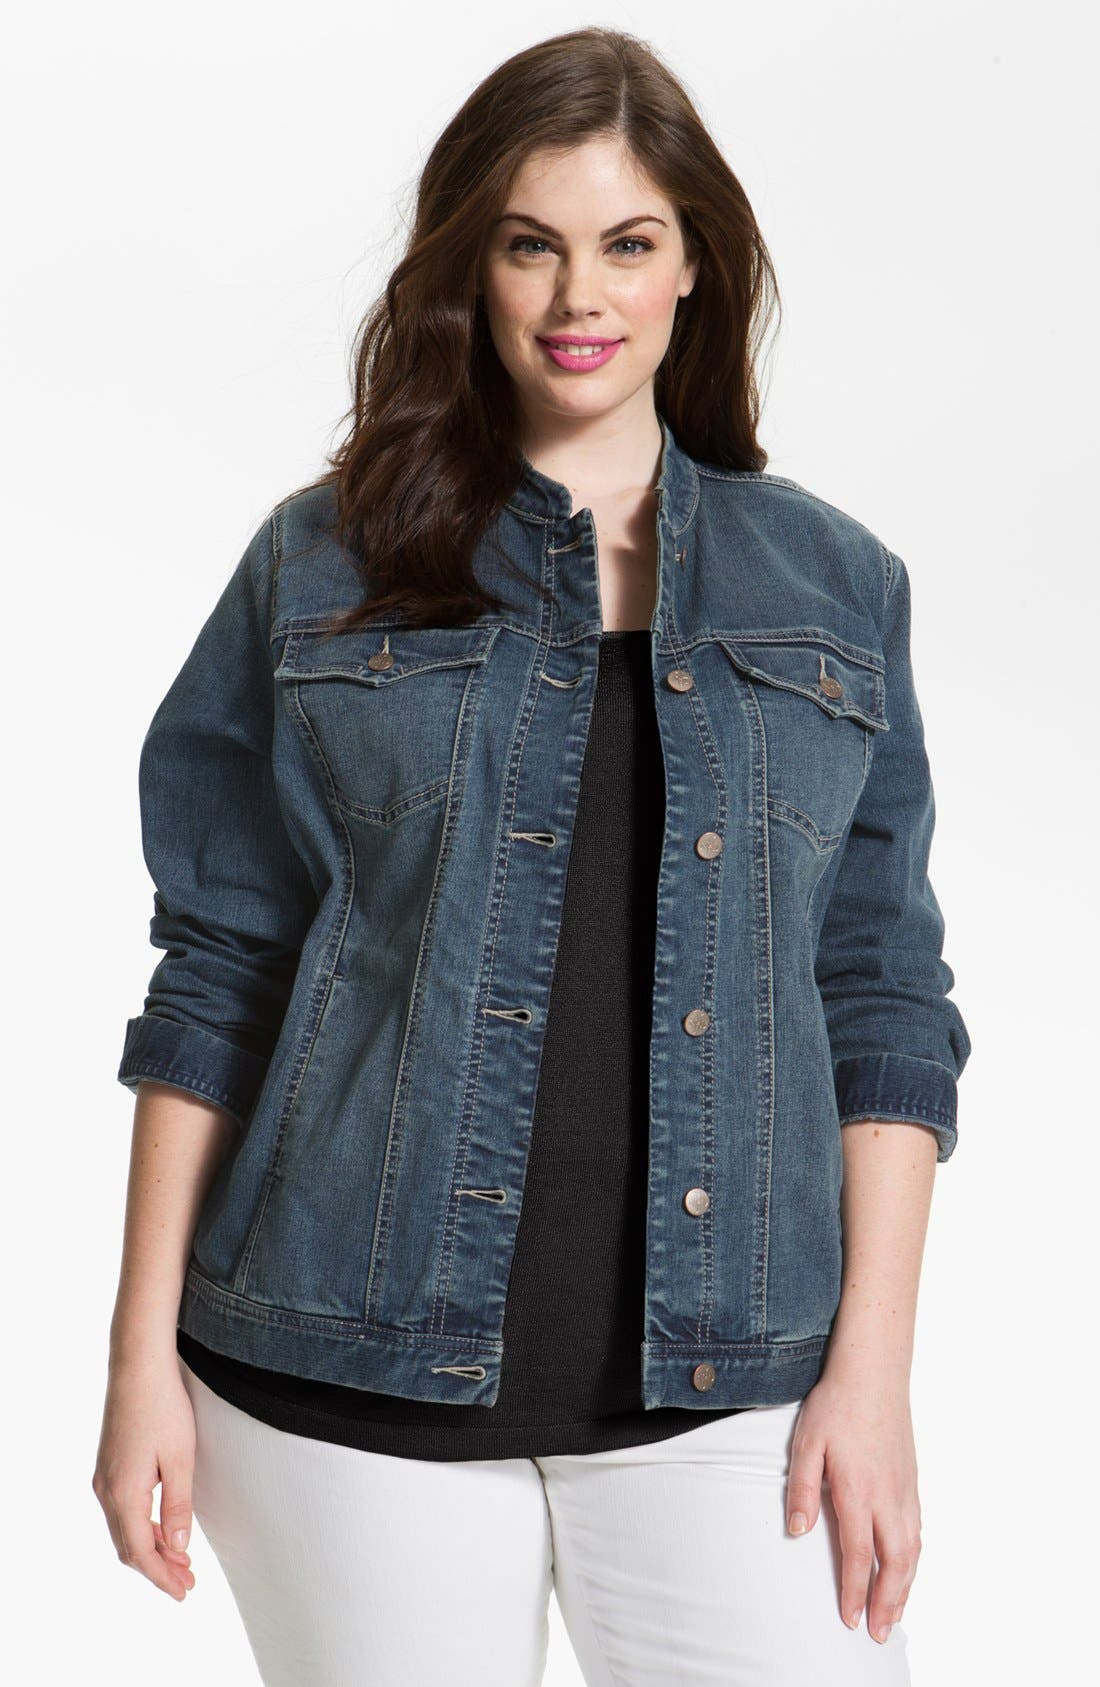 Alternate Image 1 Selected - NYDJ 'Penny' Jean Jacket (Plus Size)